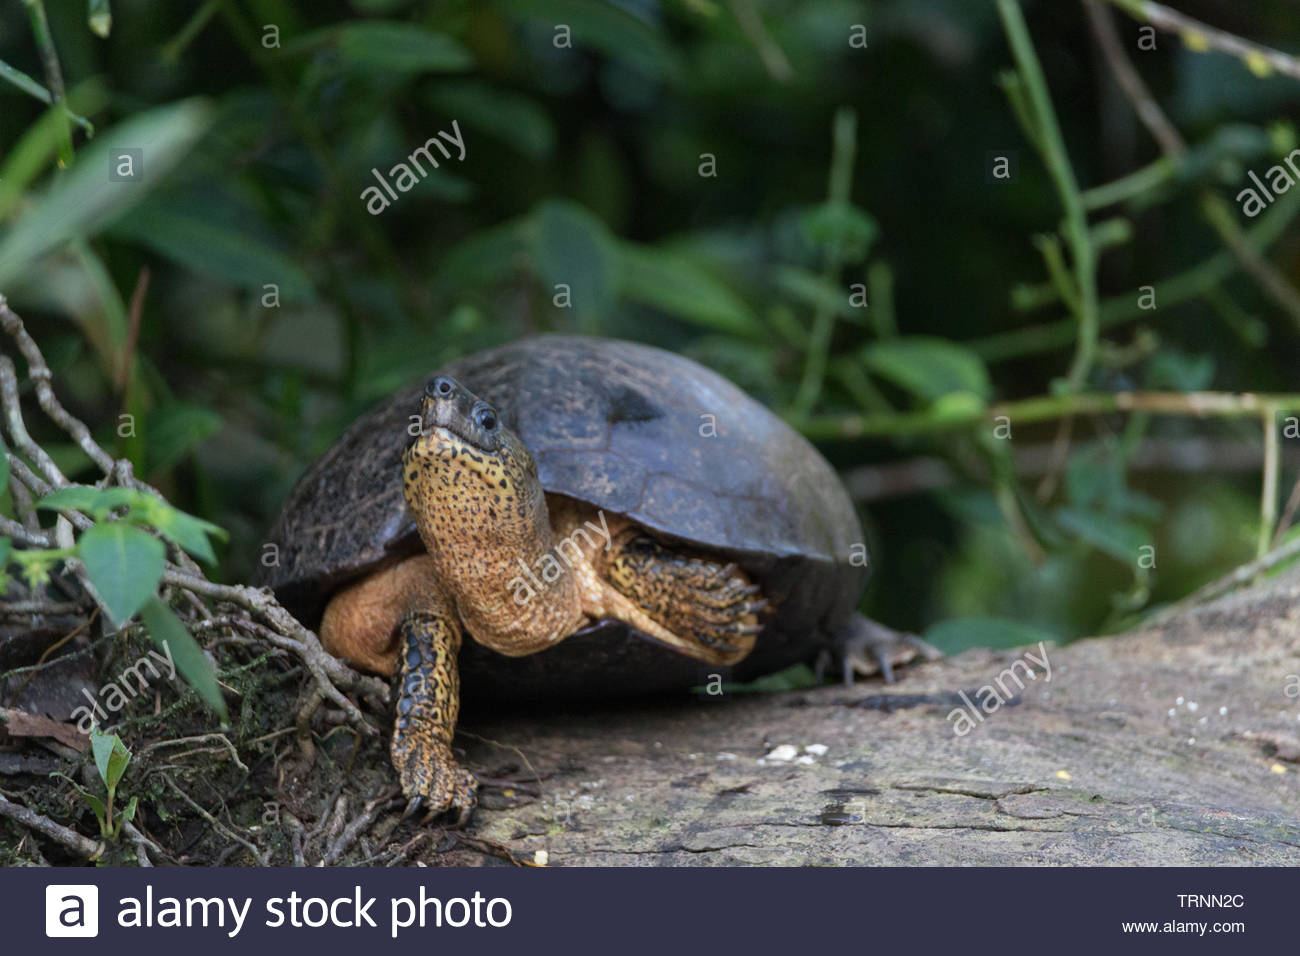 Common Slider Turtles (Trachemys scripta) Sunning Themselves in the Early Morning, Tortuguero National Park, Costa Rica - Stock Image